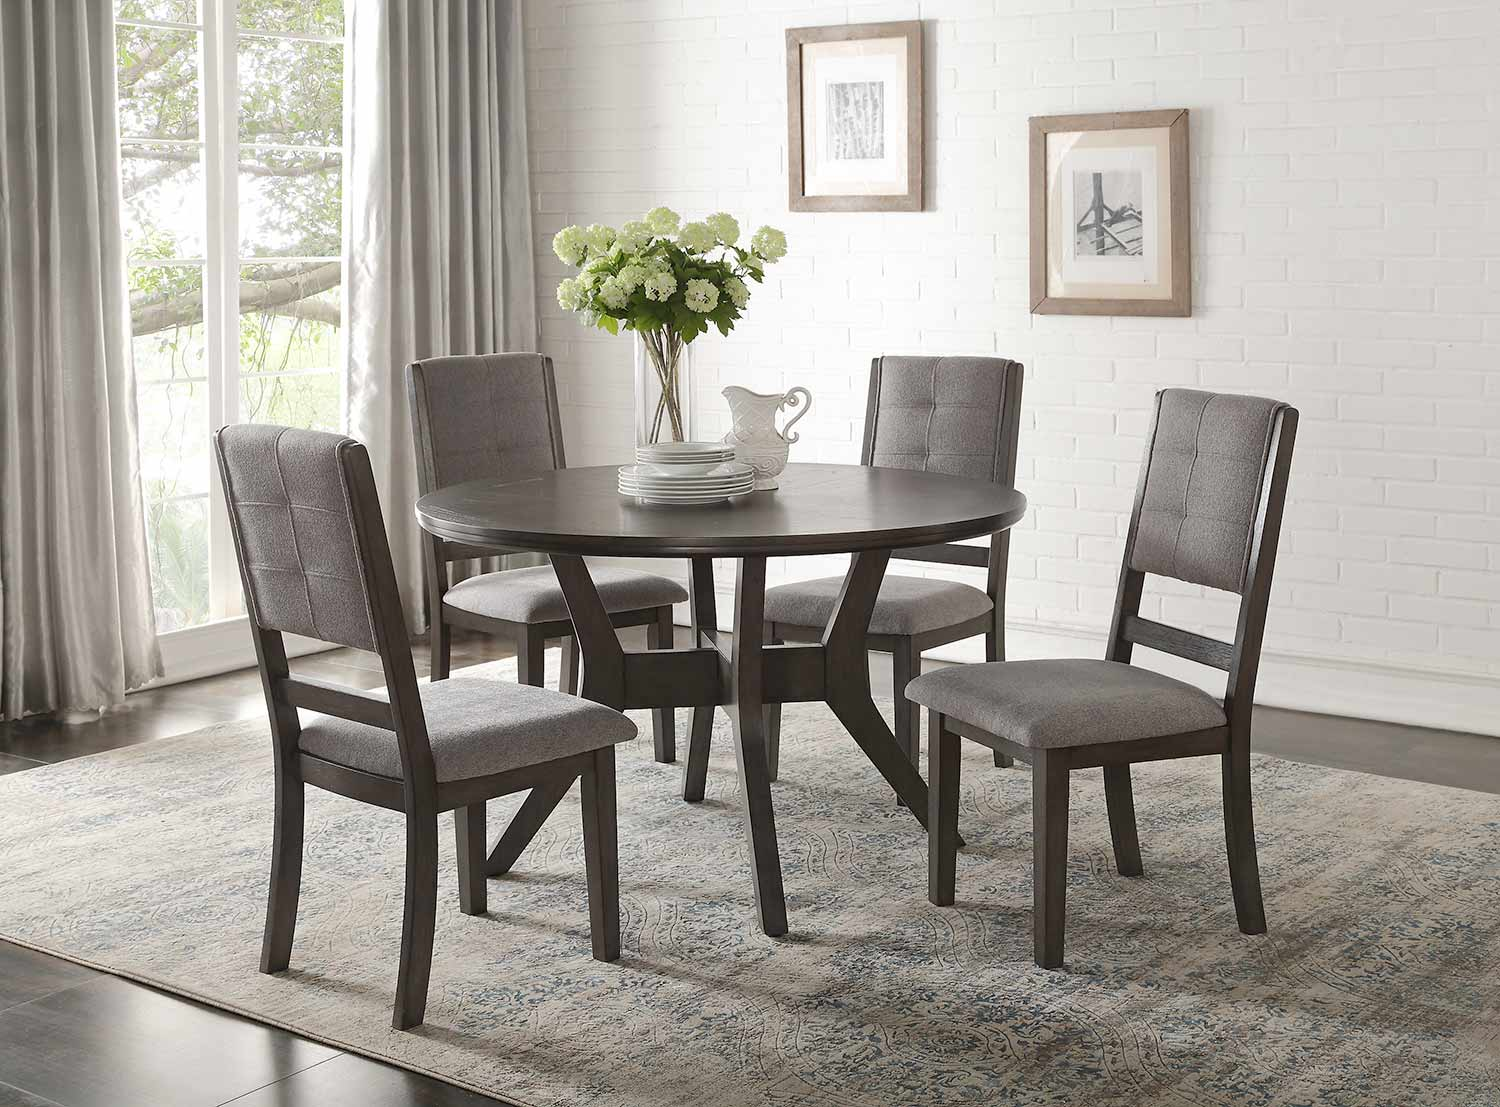 Homelegance Nisky Dining Set - Gray